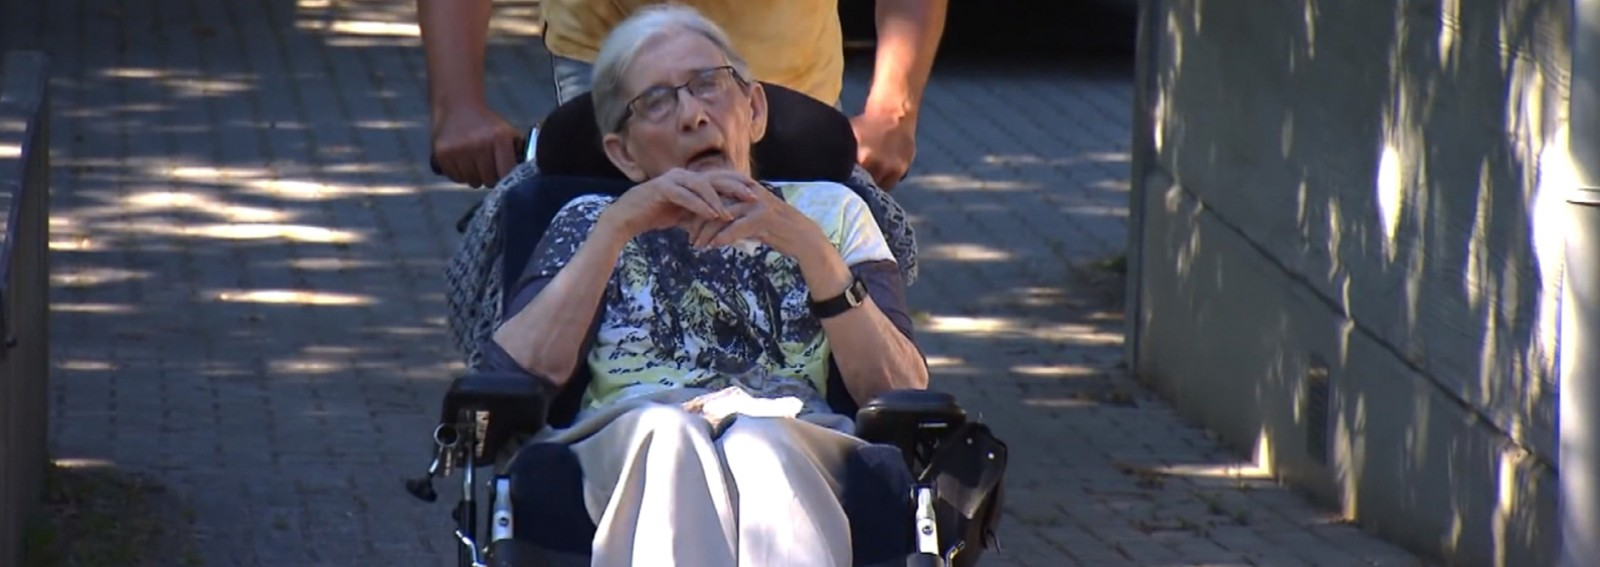 87-year-old woman with Parkinson's disease is granted touching final wish